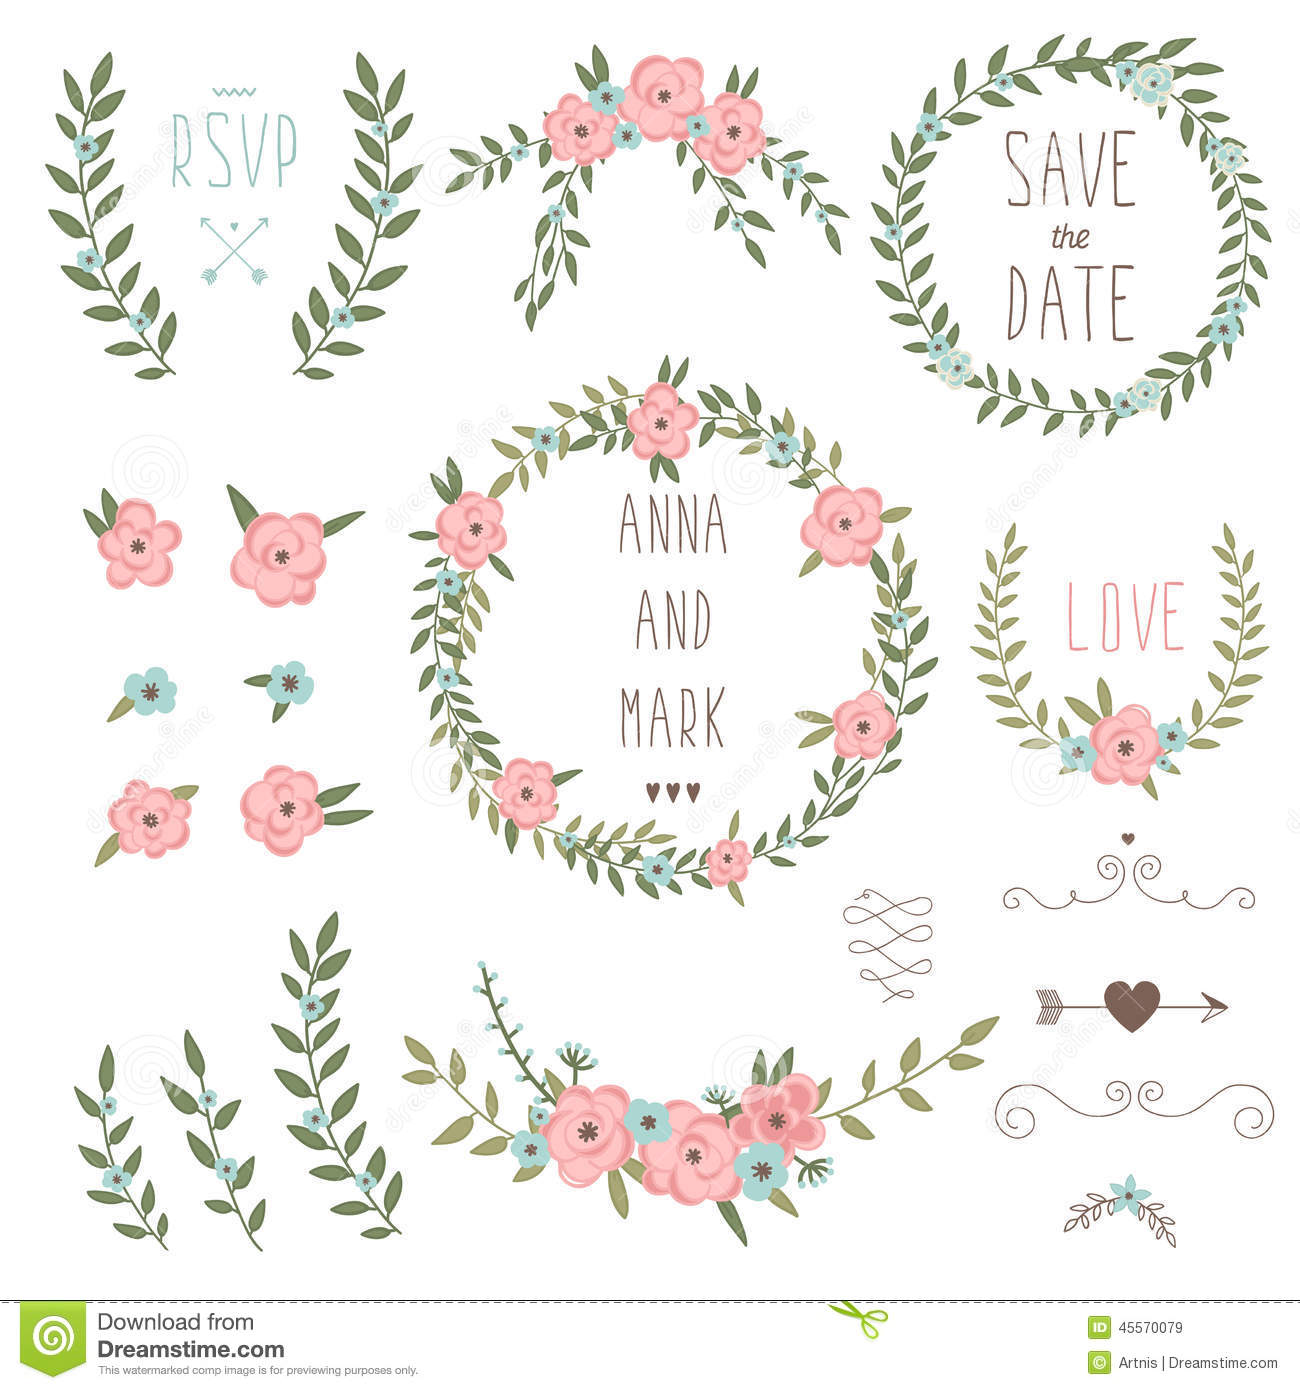 ... save-date-wedding-design-collection-perfect-save-date-baby-45570079